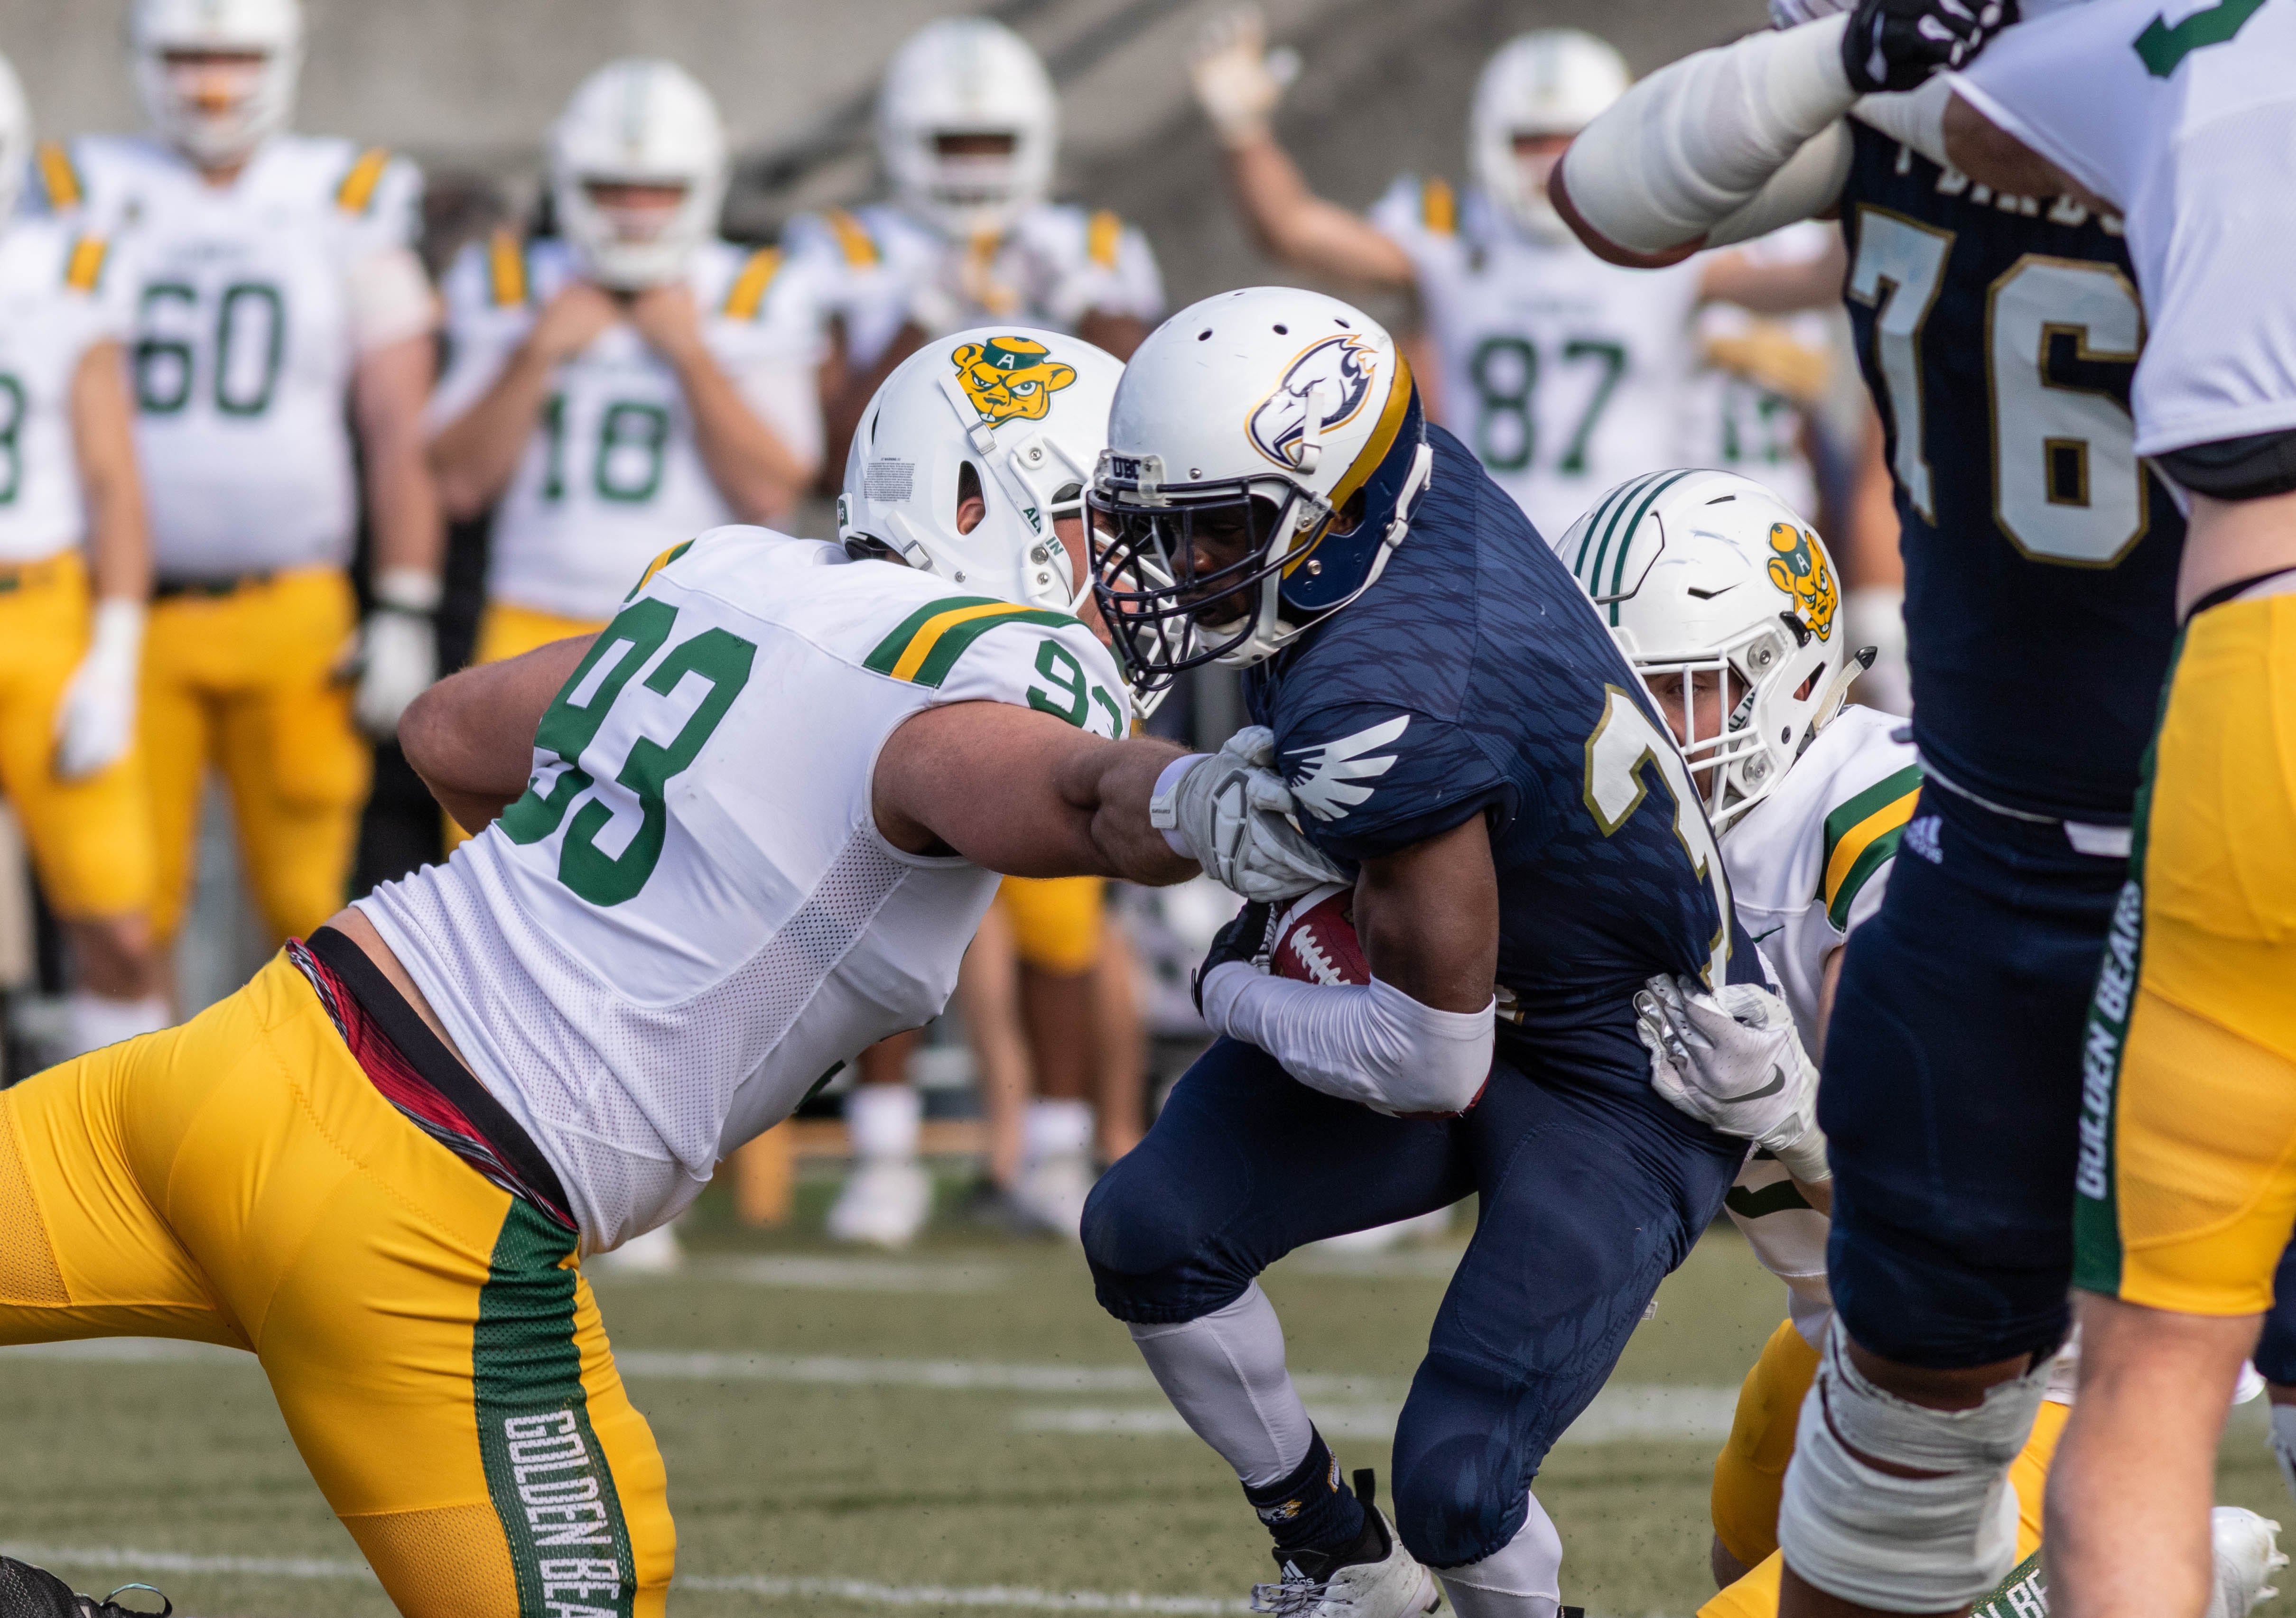 The T-Birds found ways to get past the undefeated Golden Bears' defence throughout the game.